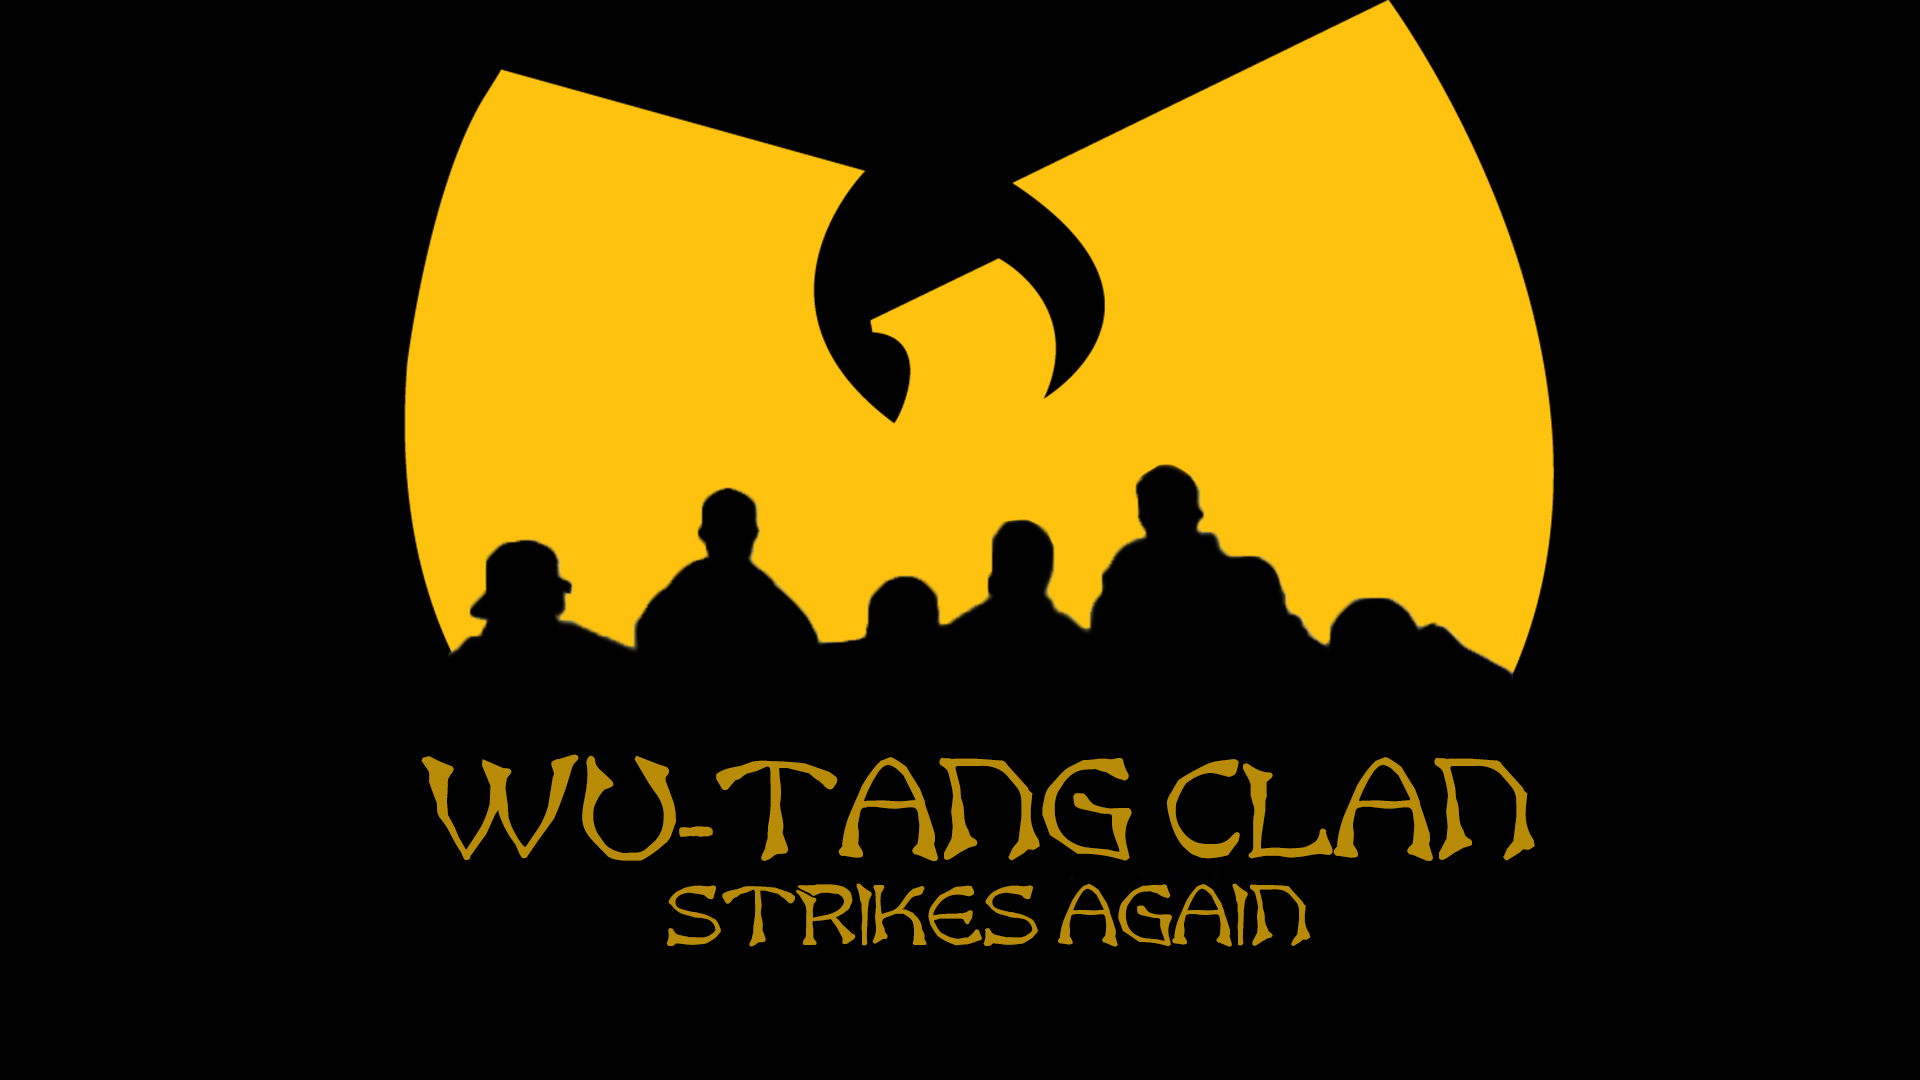 wu tang clan wallpaper 1080p by therealsneakman on deviantart